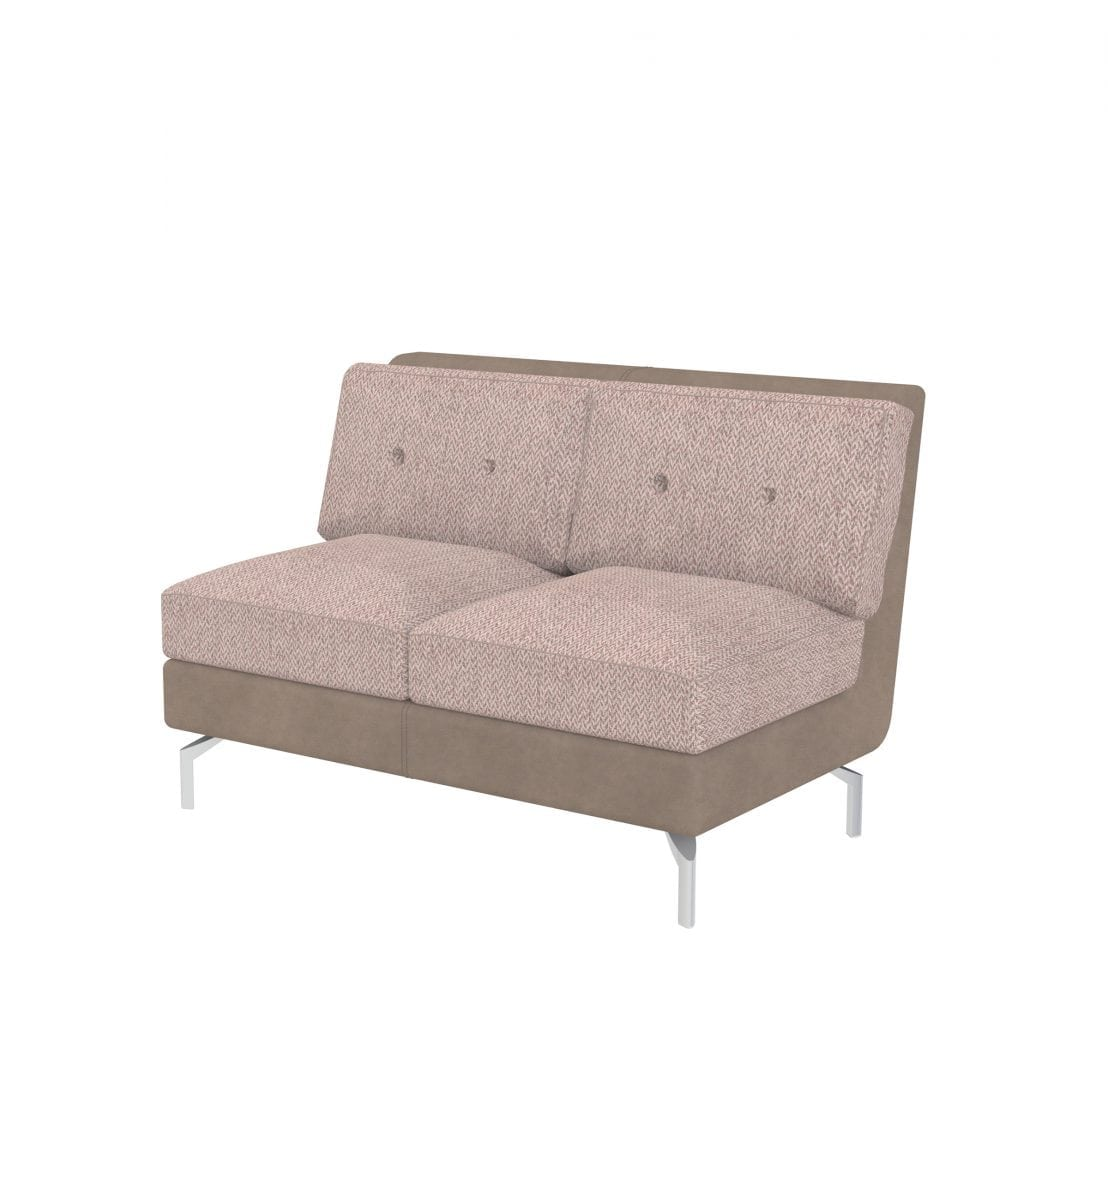 Prime De2 Deco Two Seater Tuxedo Style Modular Sofa Summit Chairs Caraccident5 Cool Chair Designs And Ideas Caraccident5Info